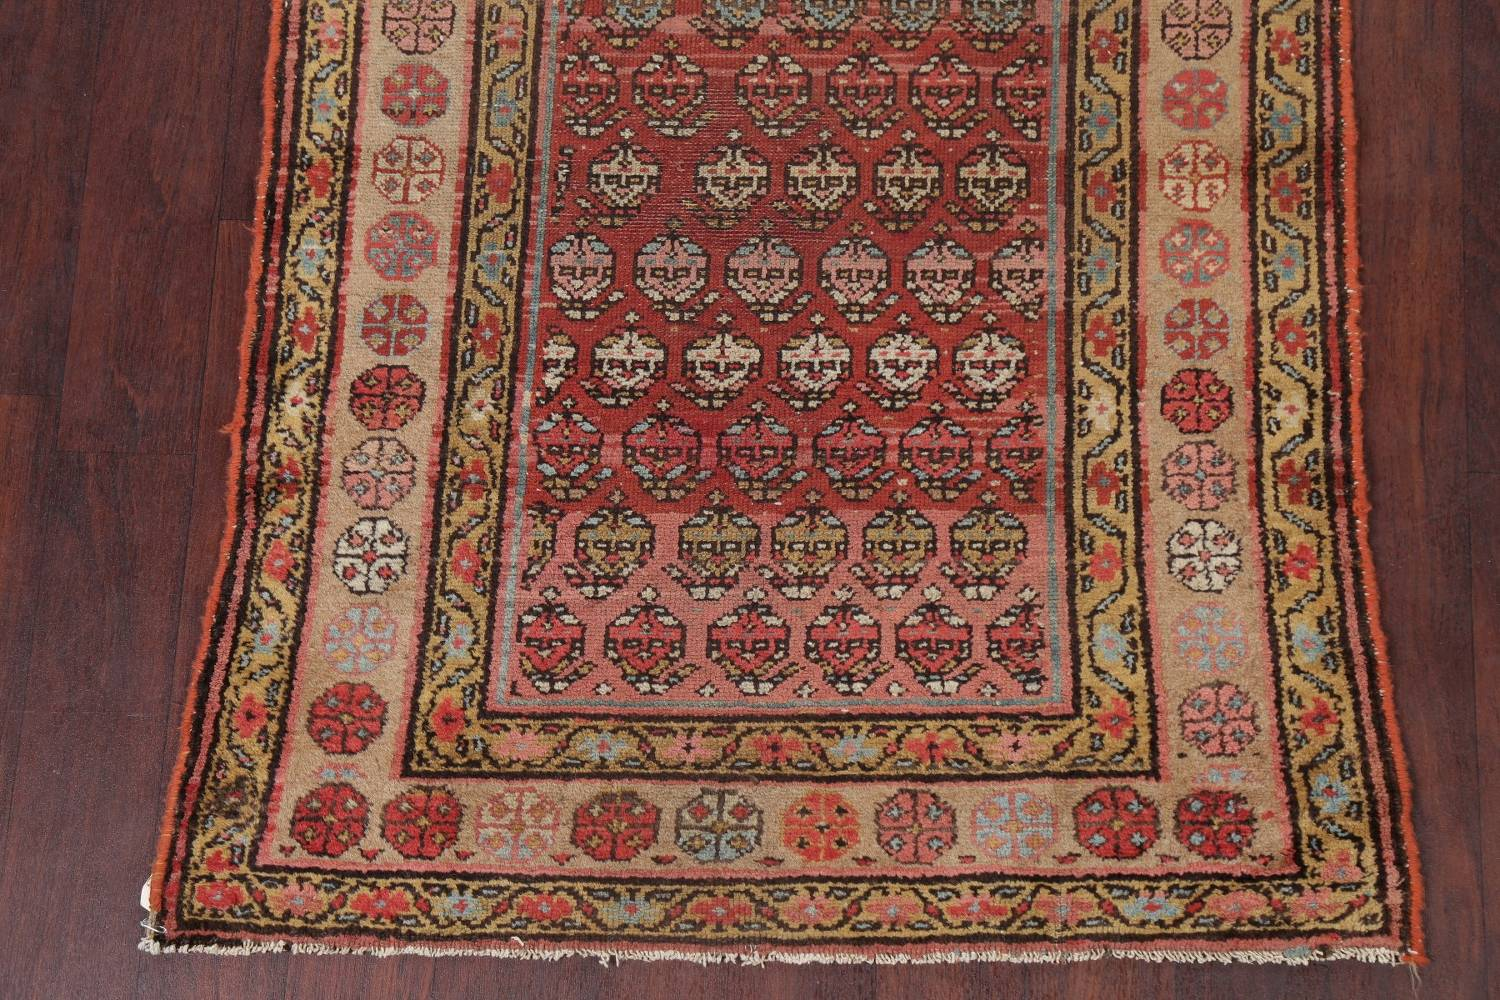 Pre-1900 Antique Vegetable Dye Malayer Persian Rug 3x8 image 8